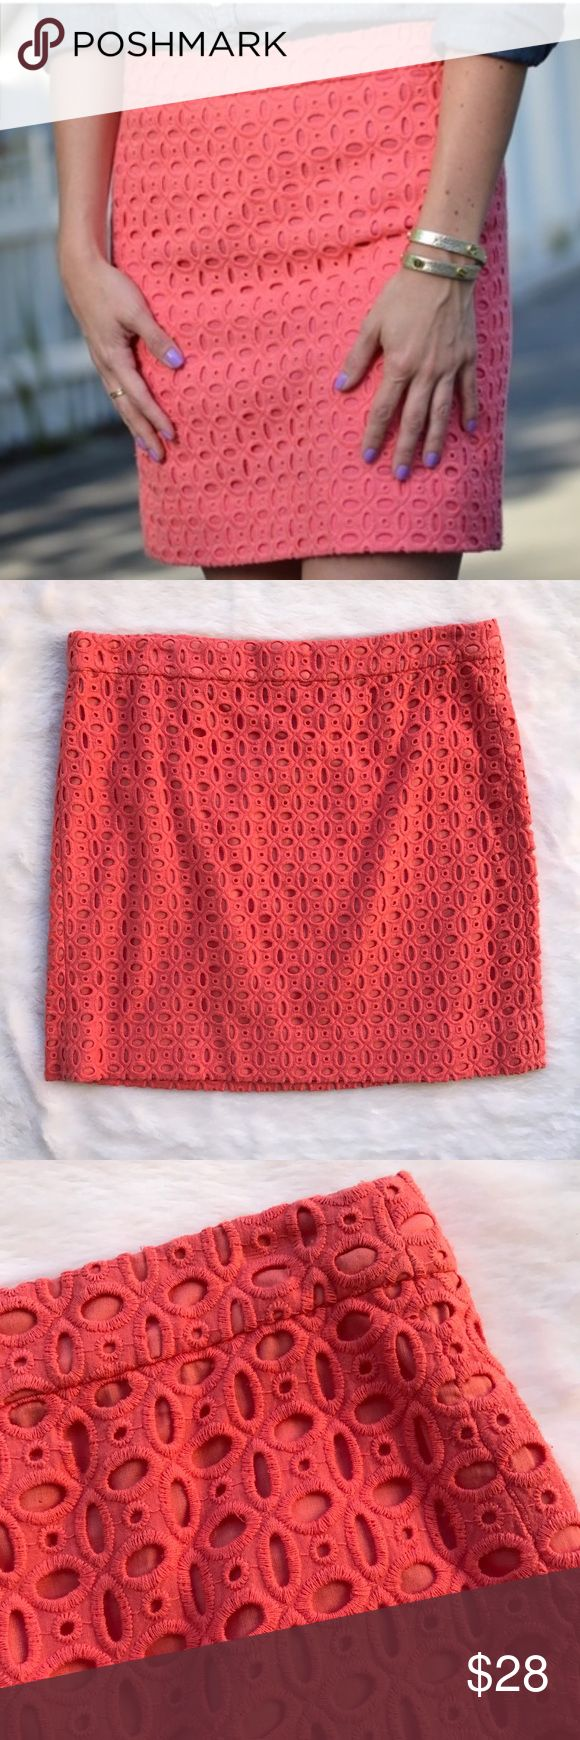 J. Crew Factory Pink Eyelight Mini Skirt Conditions: Like New Size: 8 Color: Coral Pink/ Peachy Pink Length: 17inch Waist: 16.5inch J. Crew Skirts Mini